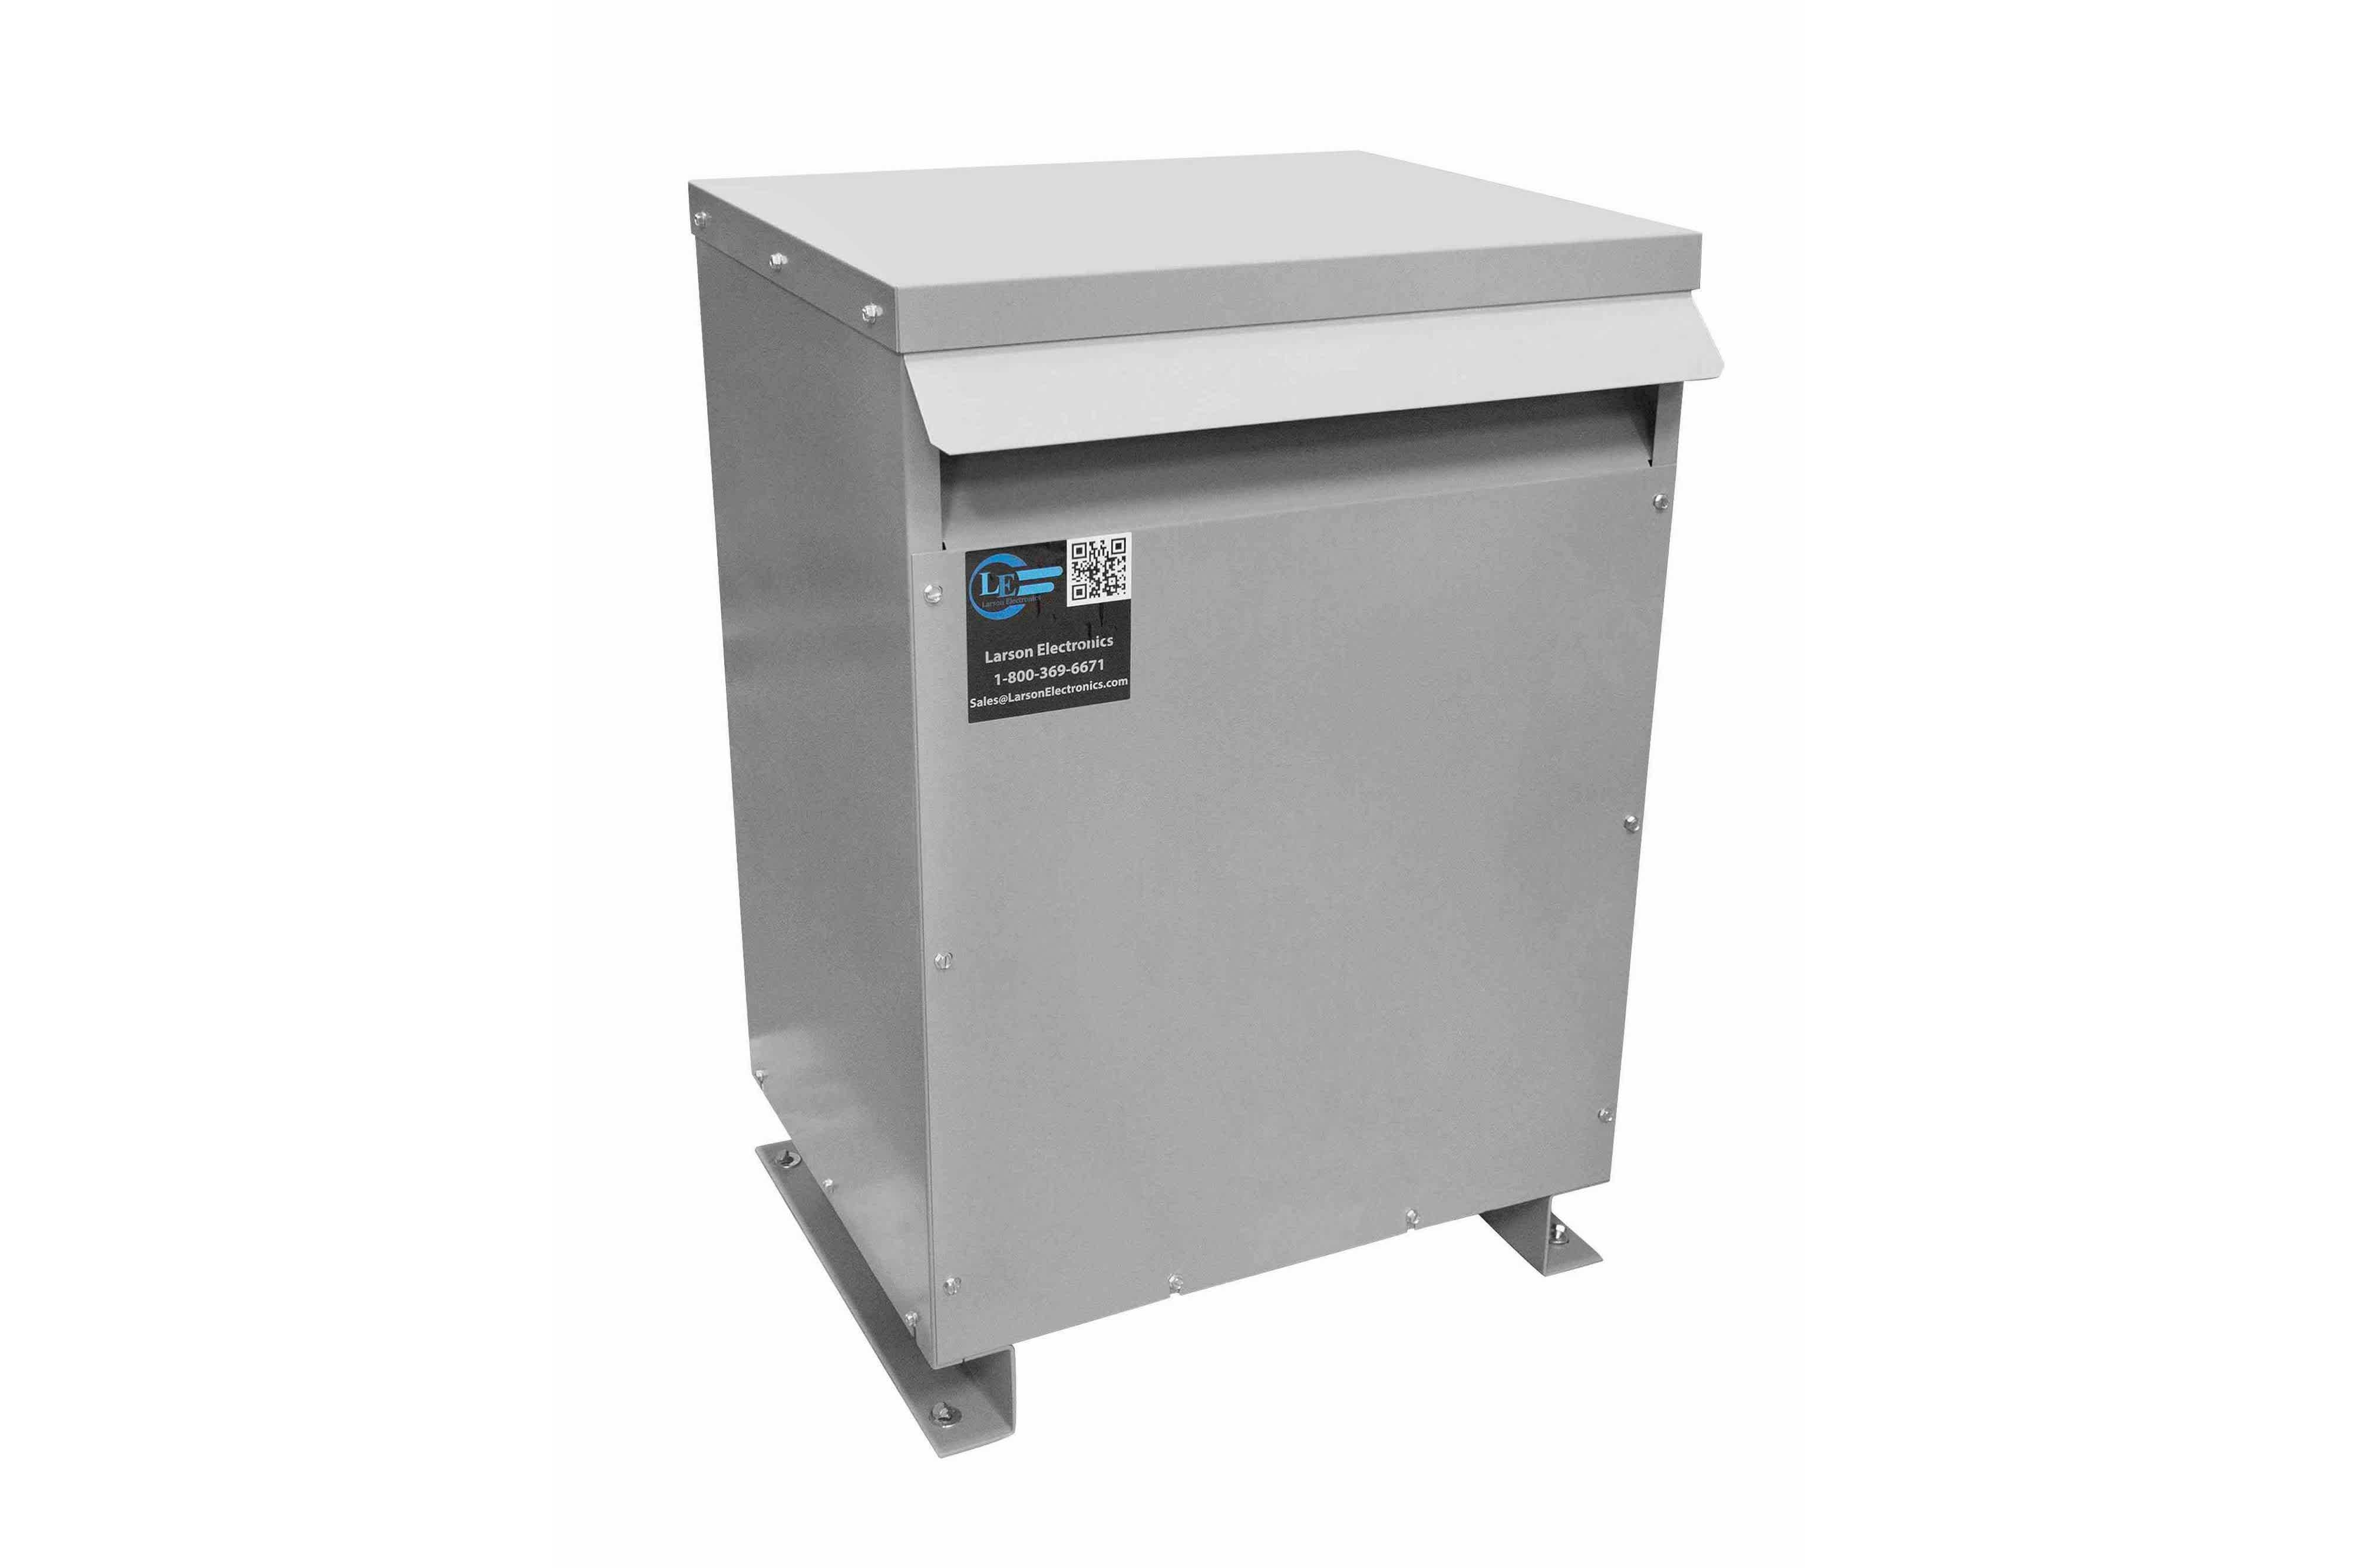 500 kVA 3PH Isolation Transformer, 400V Wye Primary, 600V Delta Secondary, N3R, Ventilated, 60 Hz